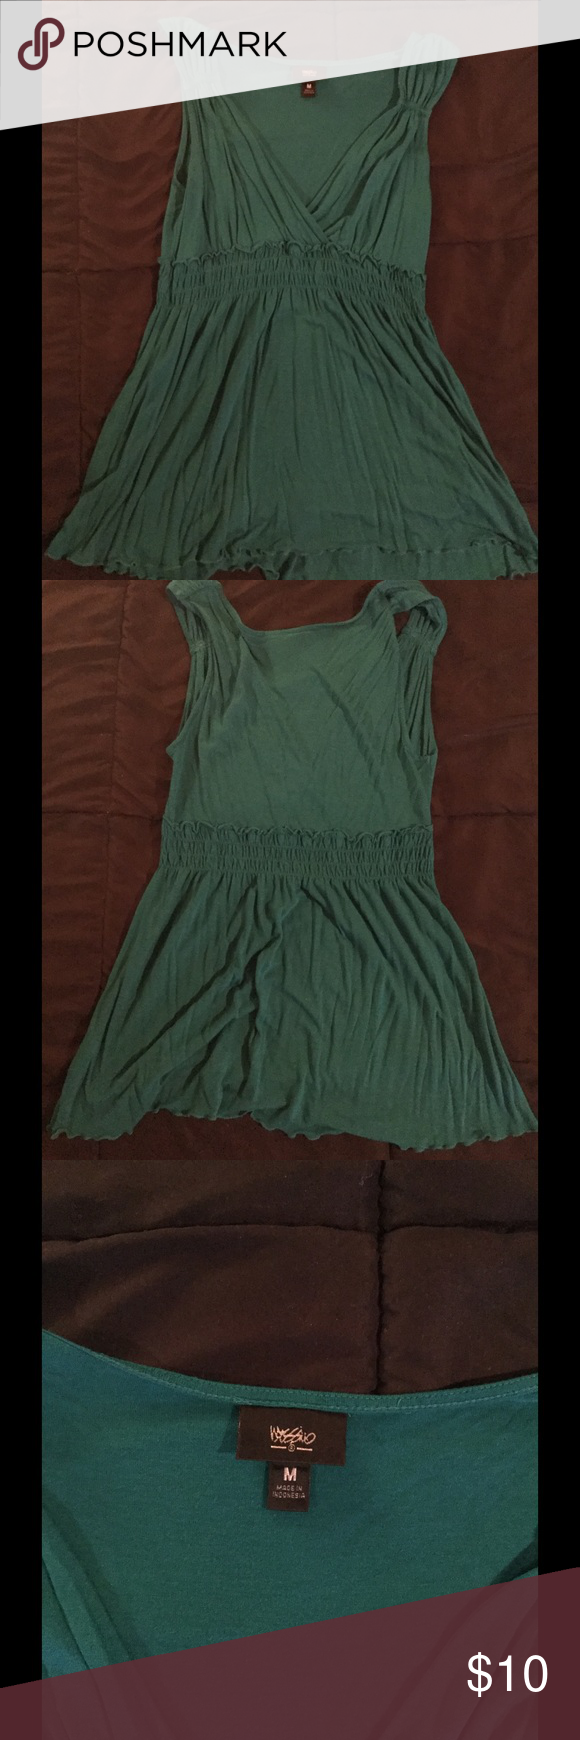 Green, flowy tank top Really pretty green tank. Bottom is very flowy and top is form fitting and low cut. Very flattering. Size M Tops Tank Tops